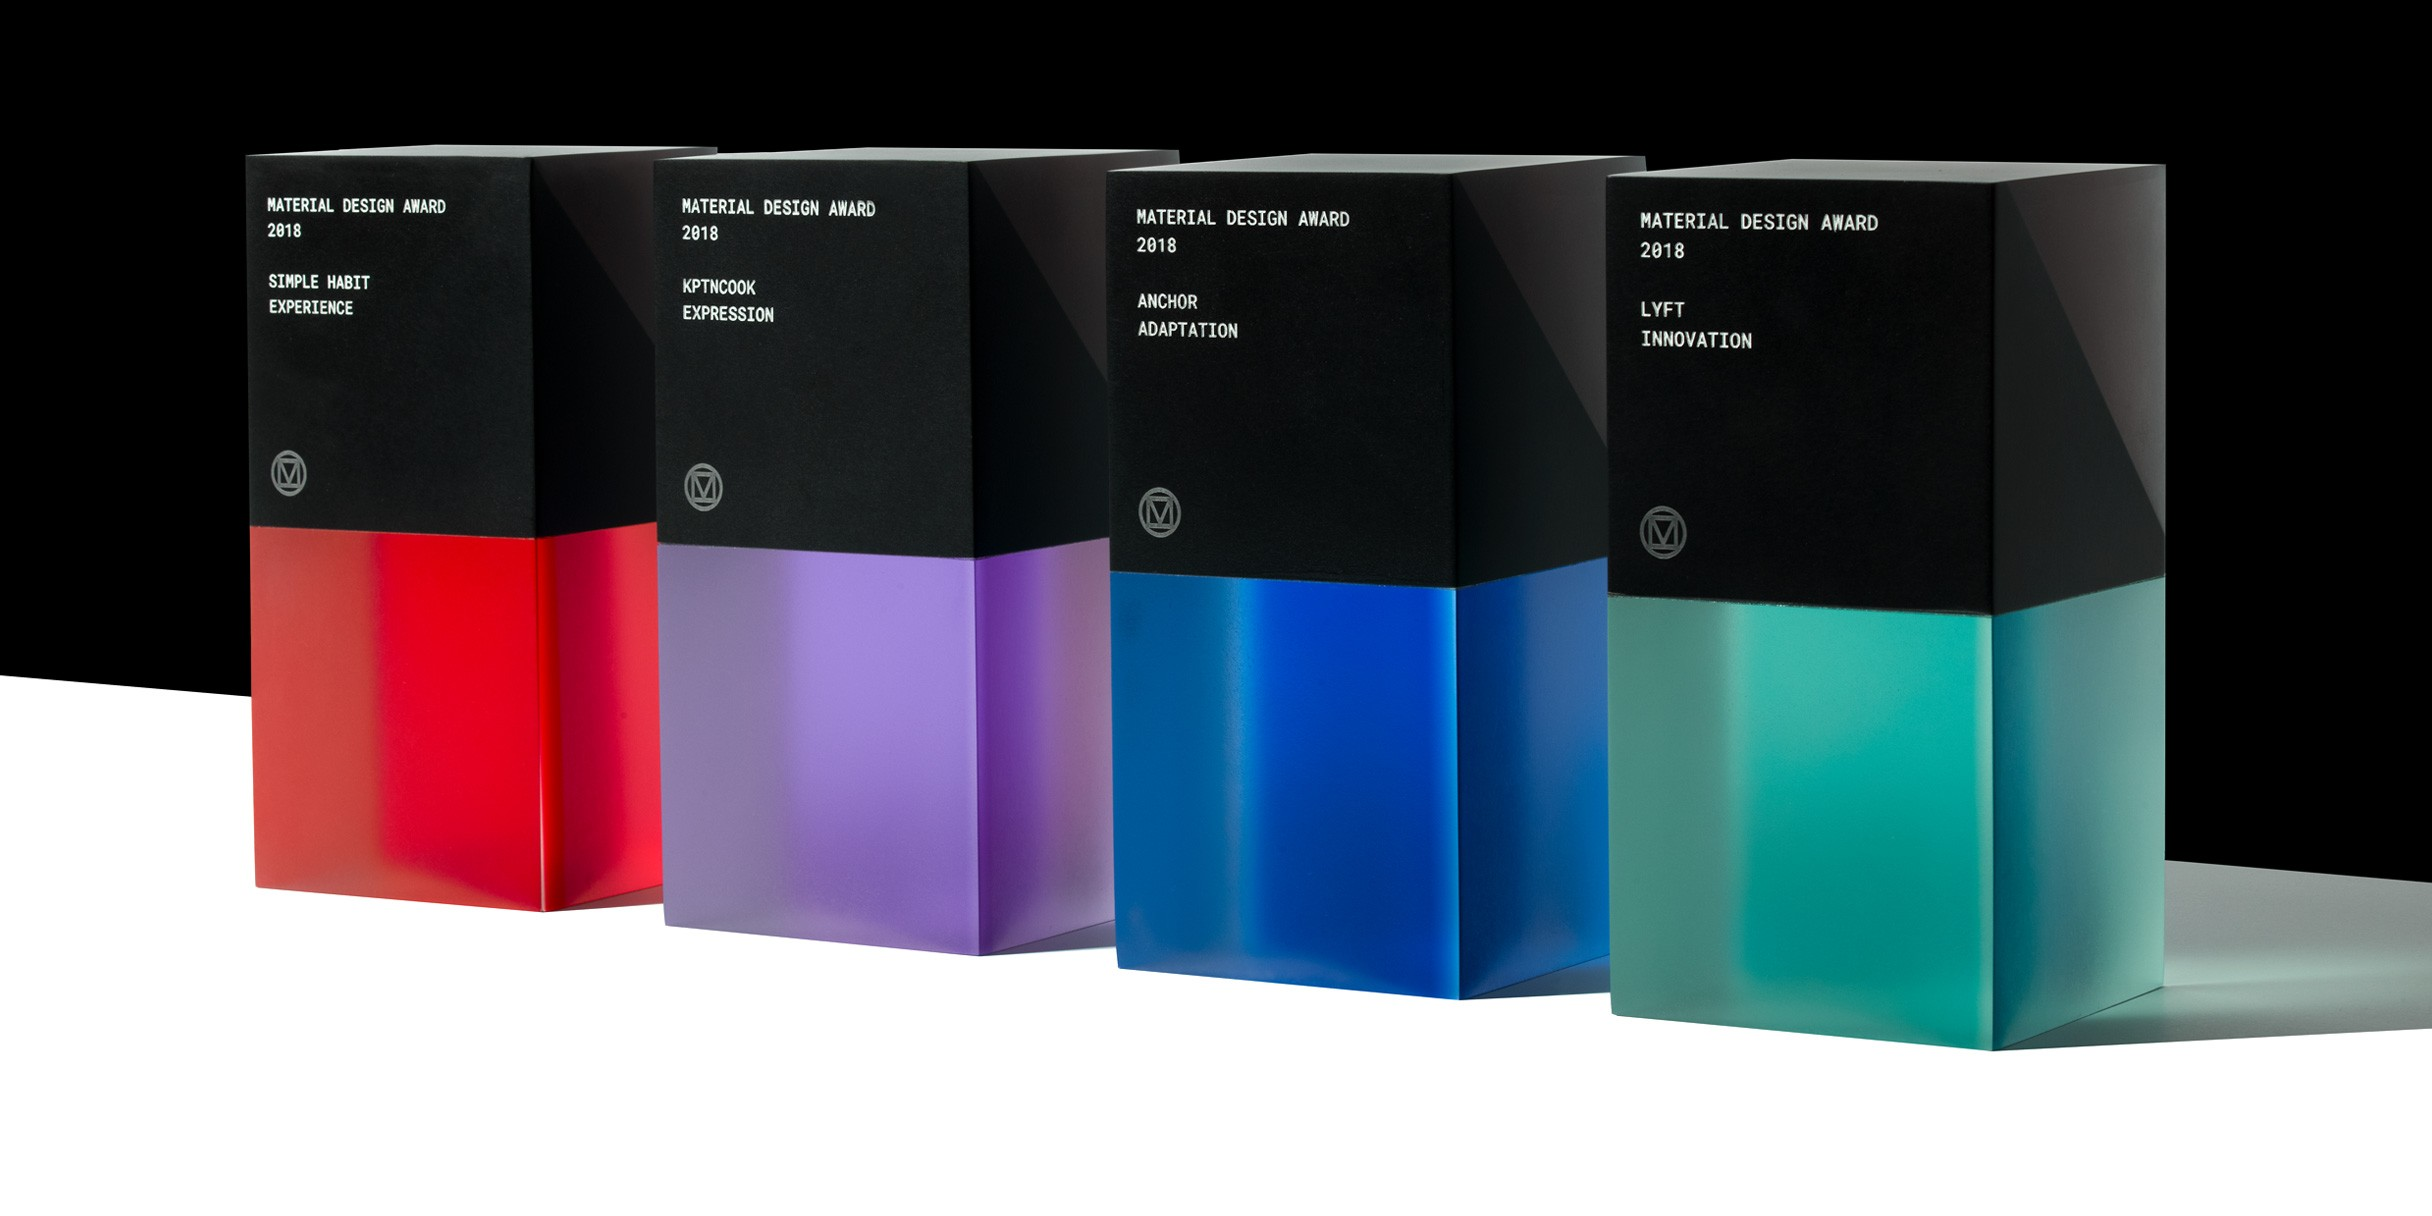 2018 Material Design Award winners announced, all featuring unique Material Themes